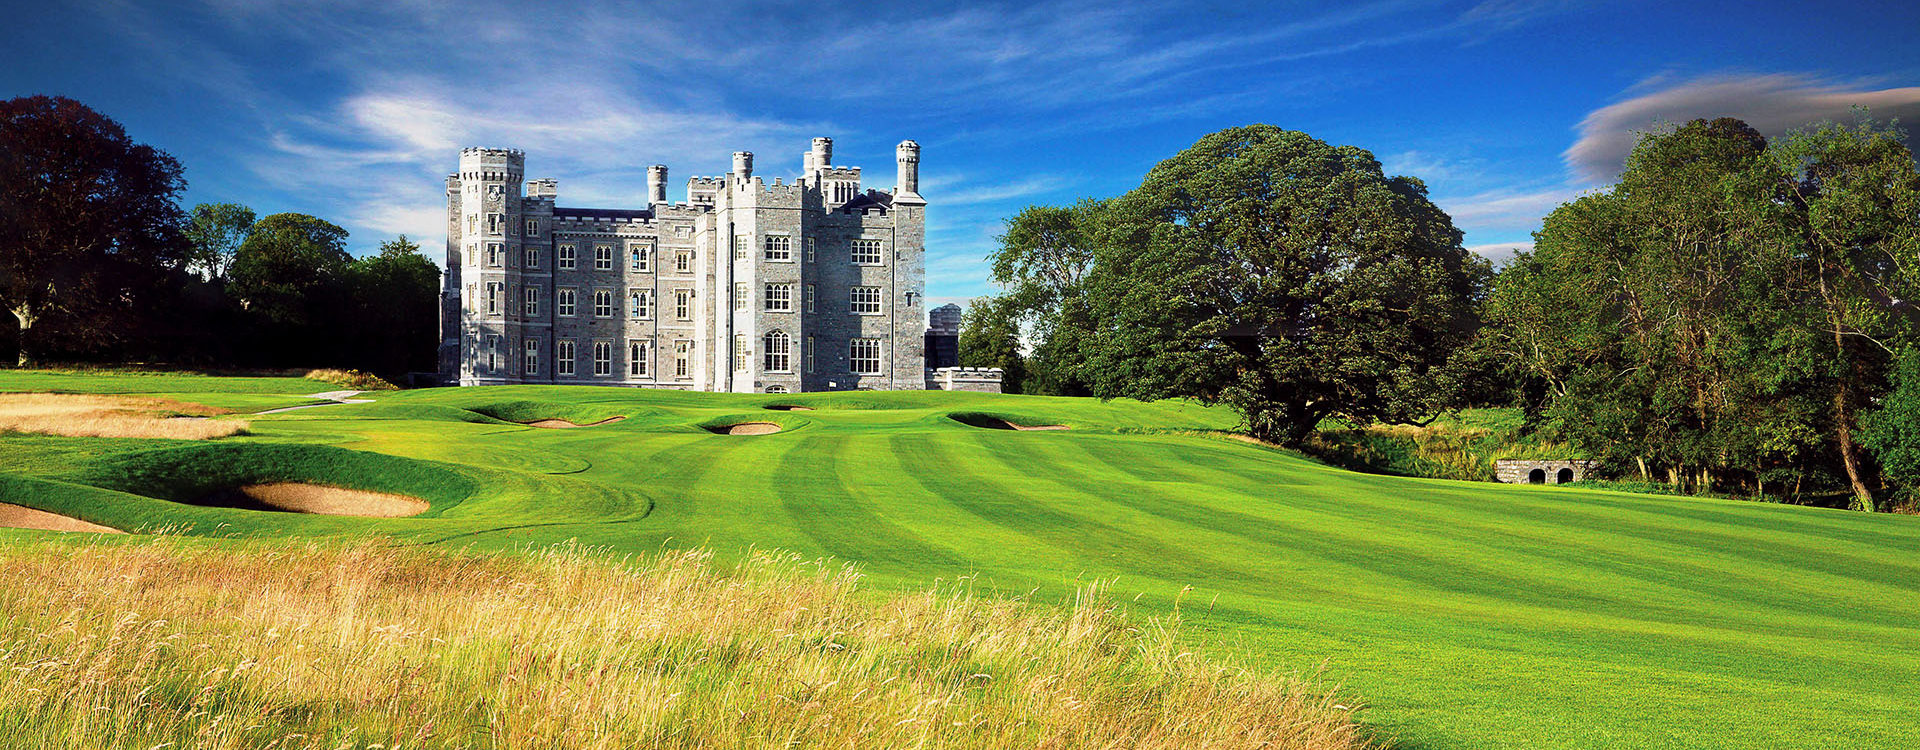 10 Best Places to Visit in Ireland - Holiday Sarthi